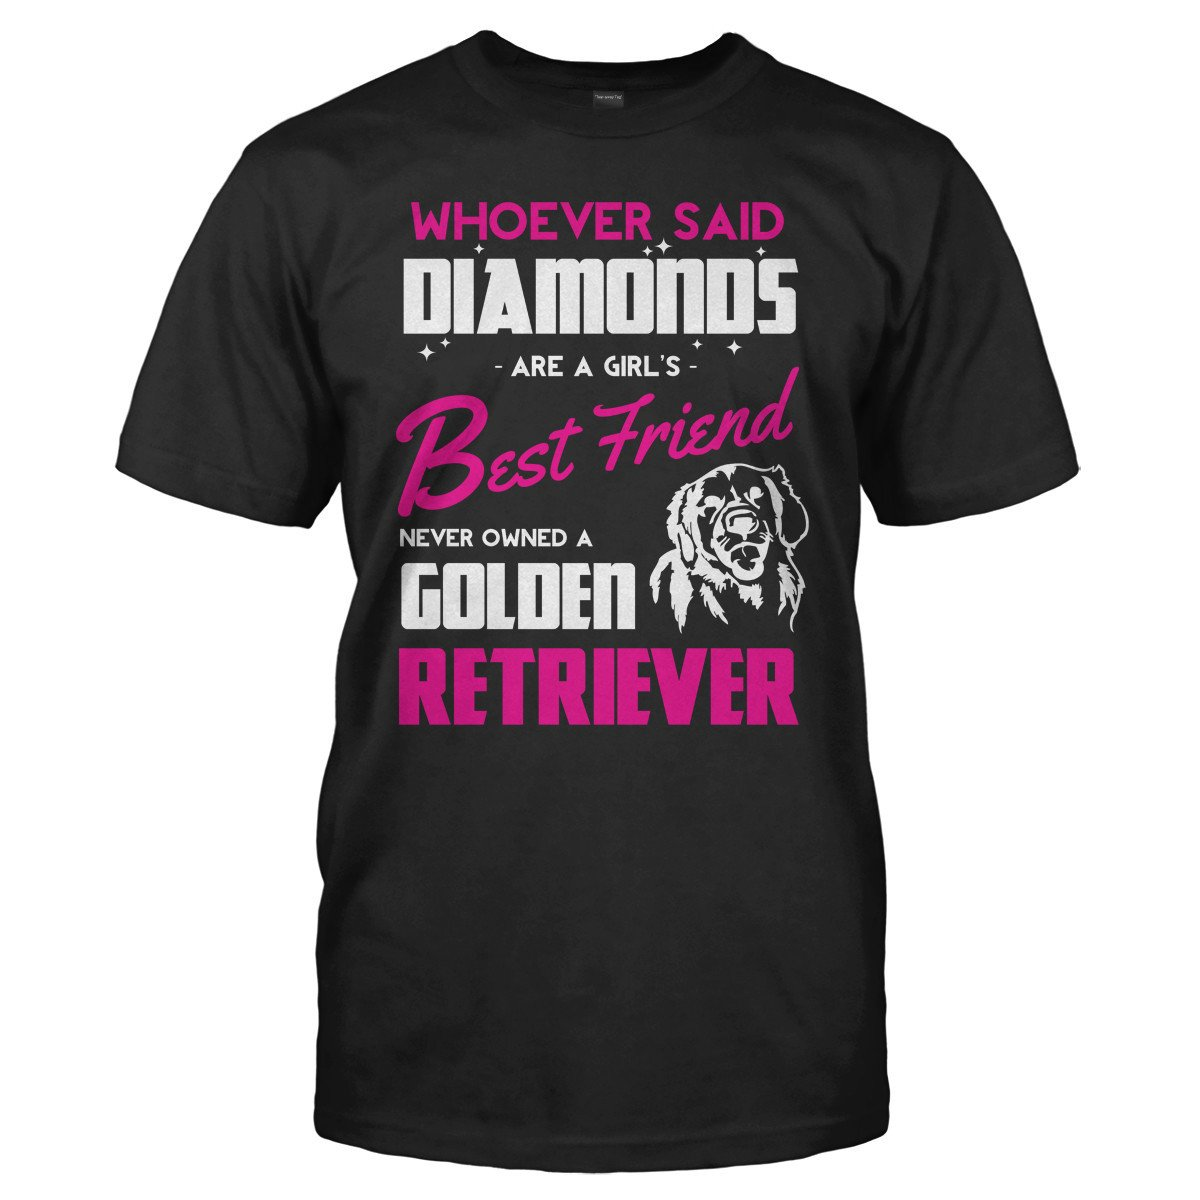 Golden Retrievers Are A Girl's Best Friend - T Shirt